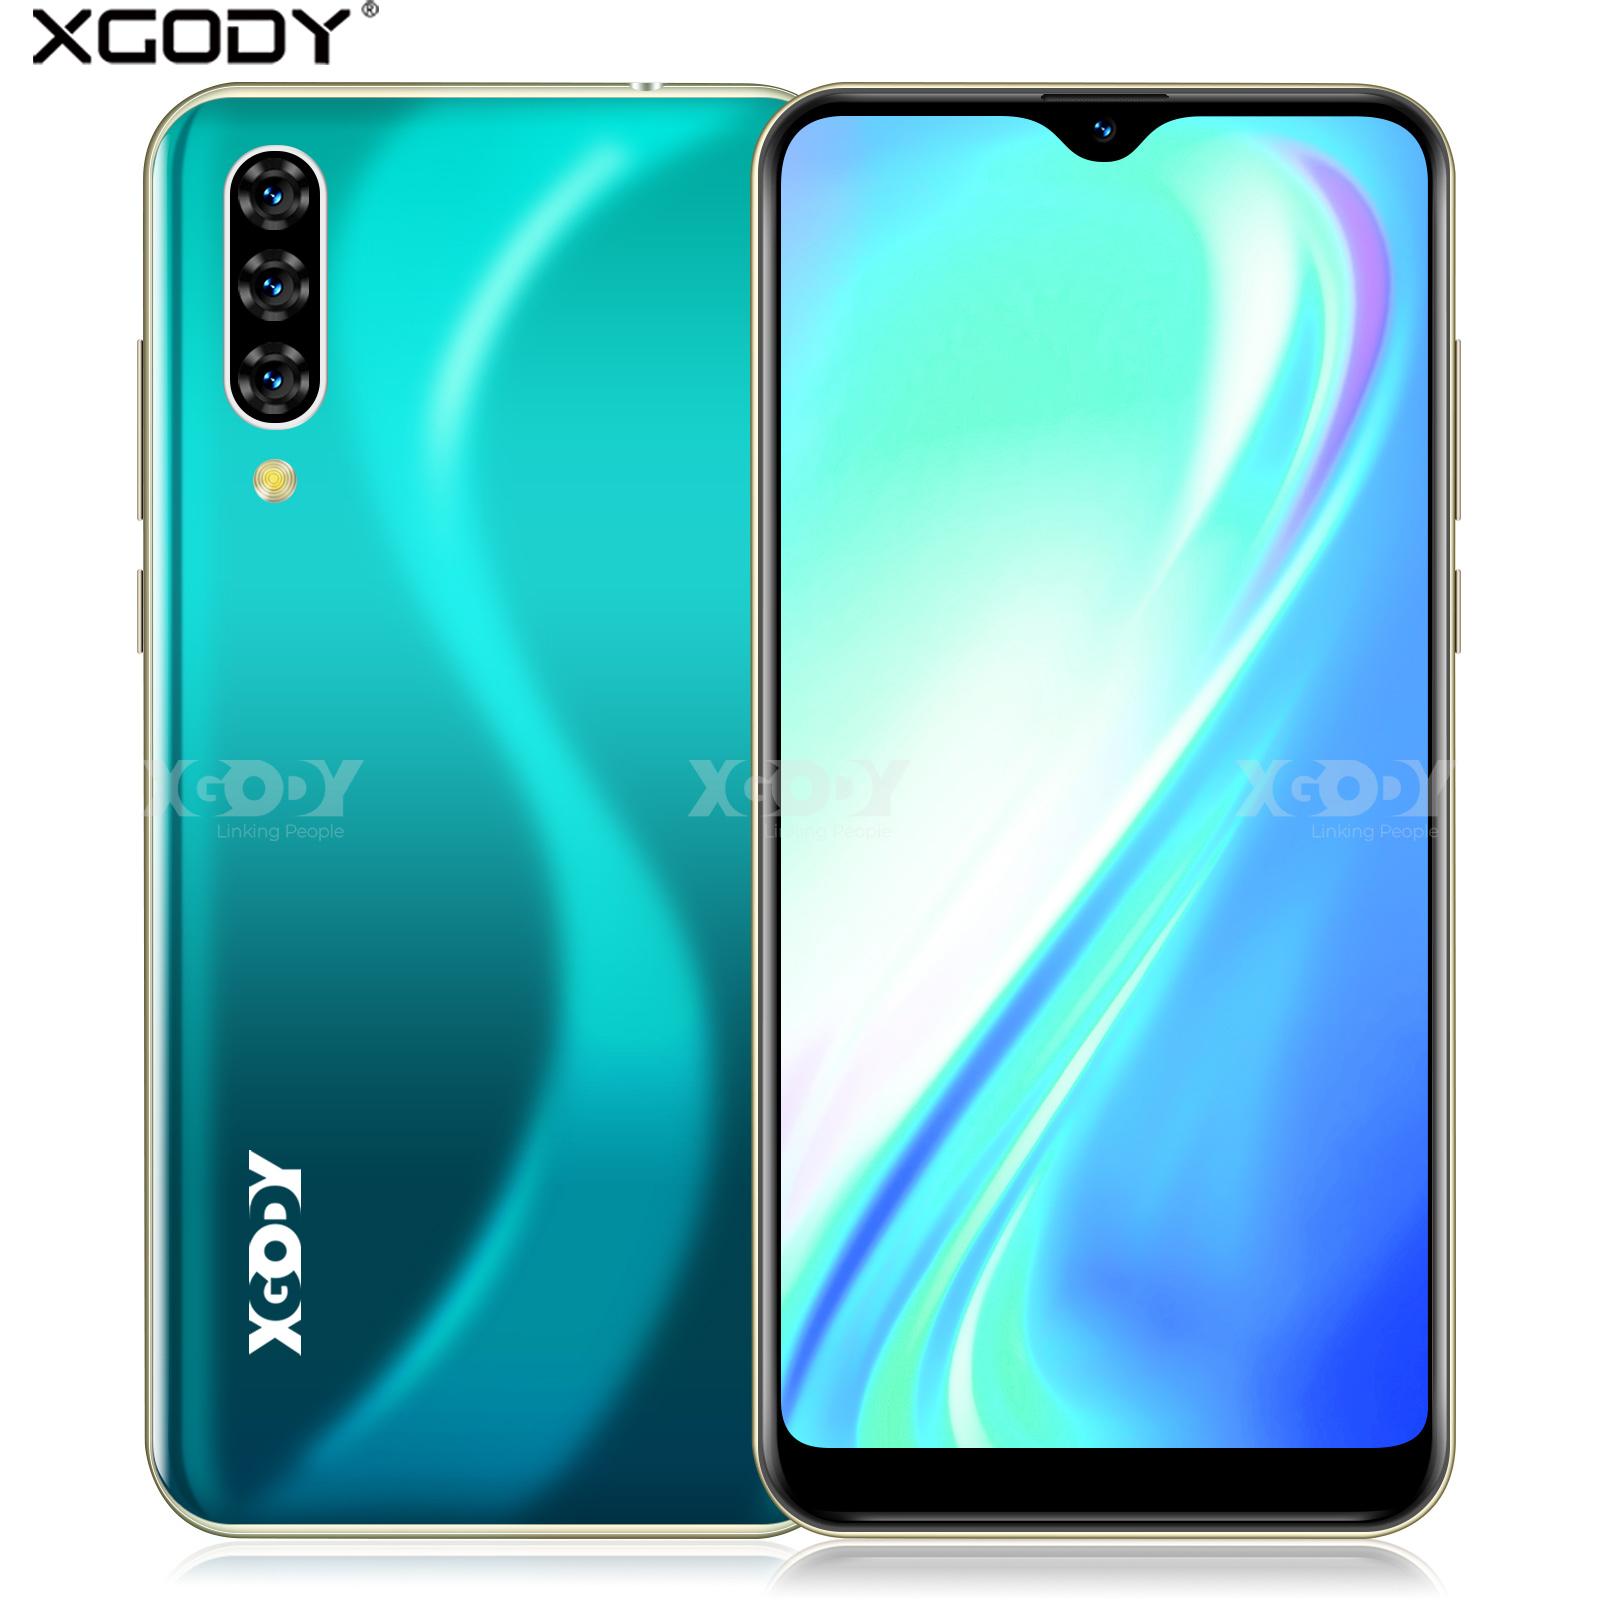 Xgody Note 7 2GB 16GB Smartphone 6.26'' Water Drop HD Screen MTK6580 Quad Core Android 9.0 Face Unlock 2800mAh 3G Mobile Phone